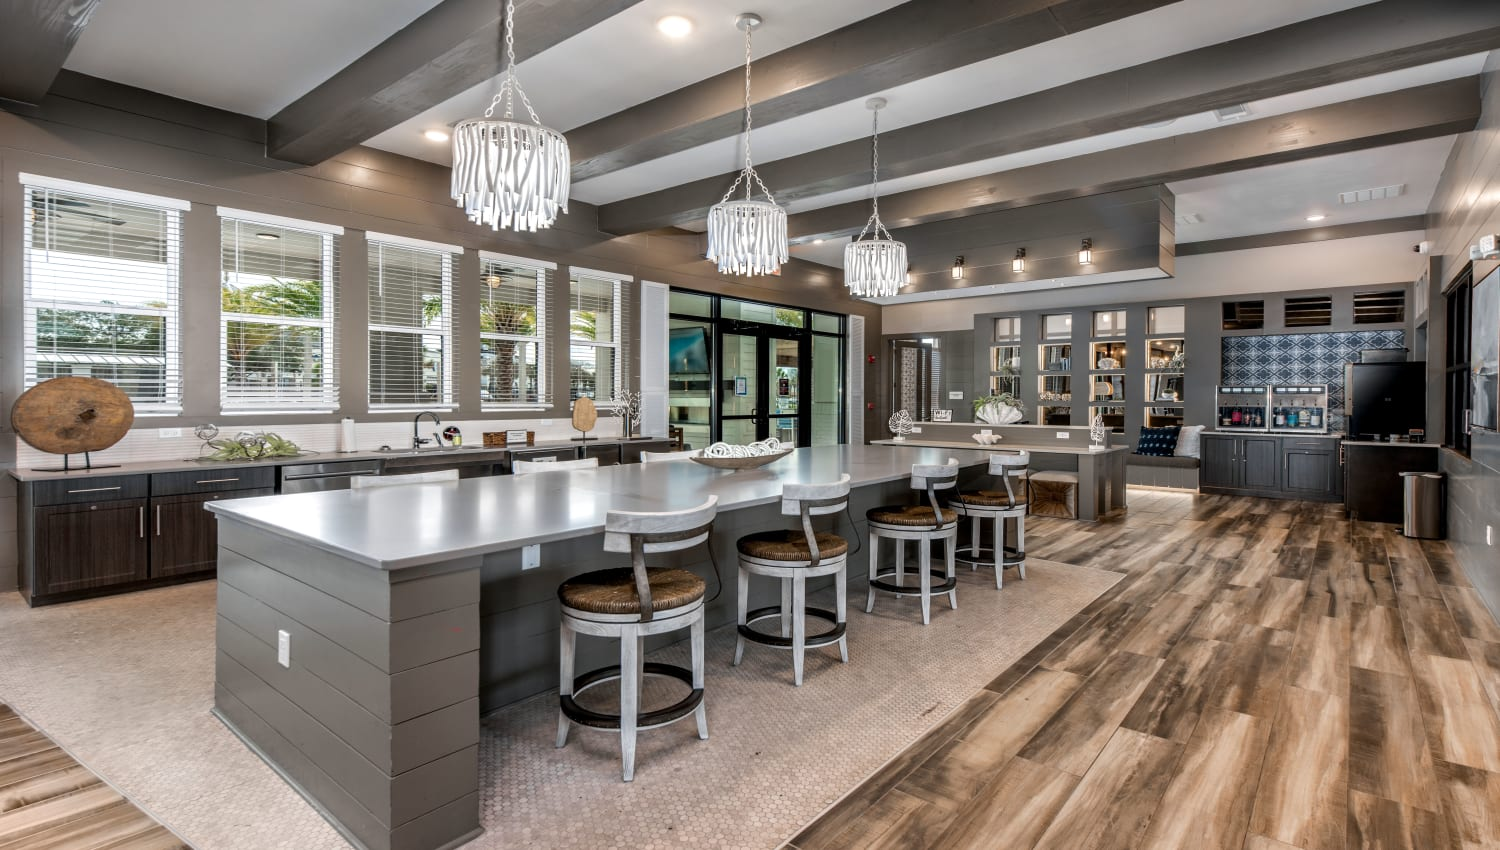 An indoor clubhouse with bar seating at Olympus Emerald Coast in Destin, Florida